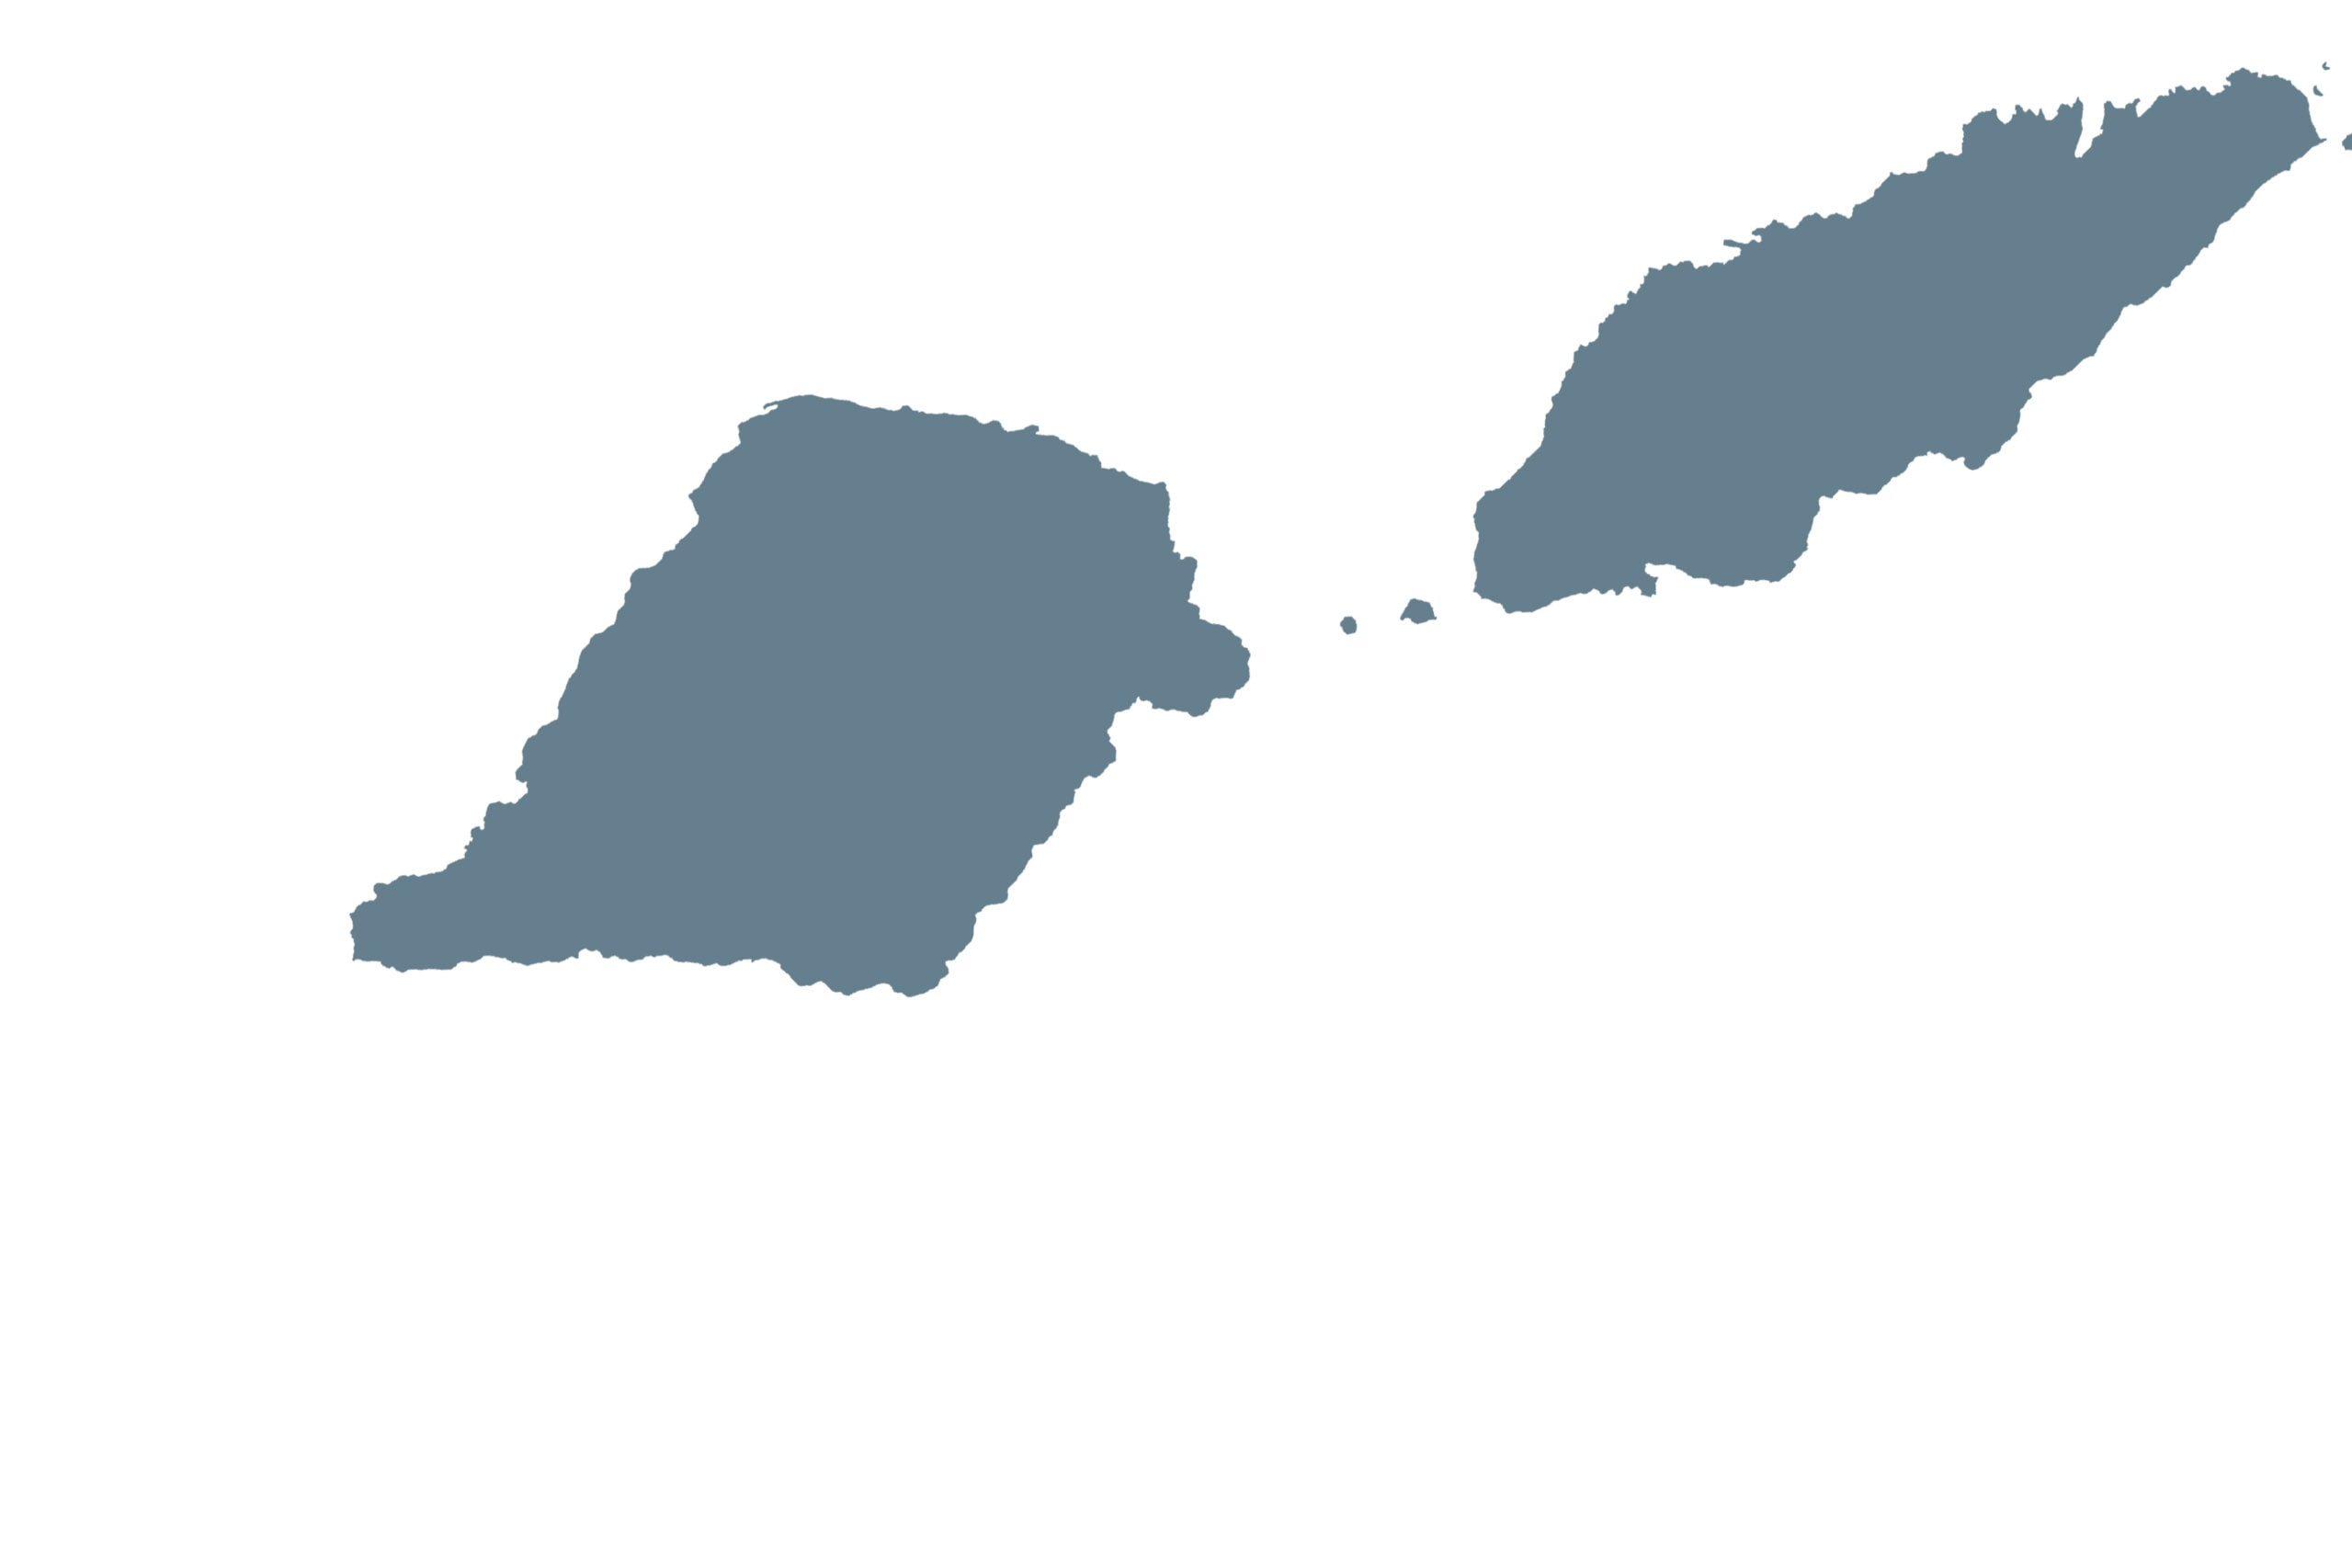 Samoa map in blue from list of missing countries for 1 Earth City Portrait Photography Project aka NYChildren by Danny Goldfield.